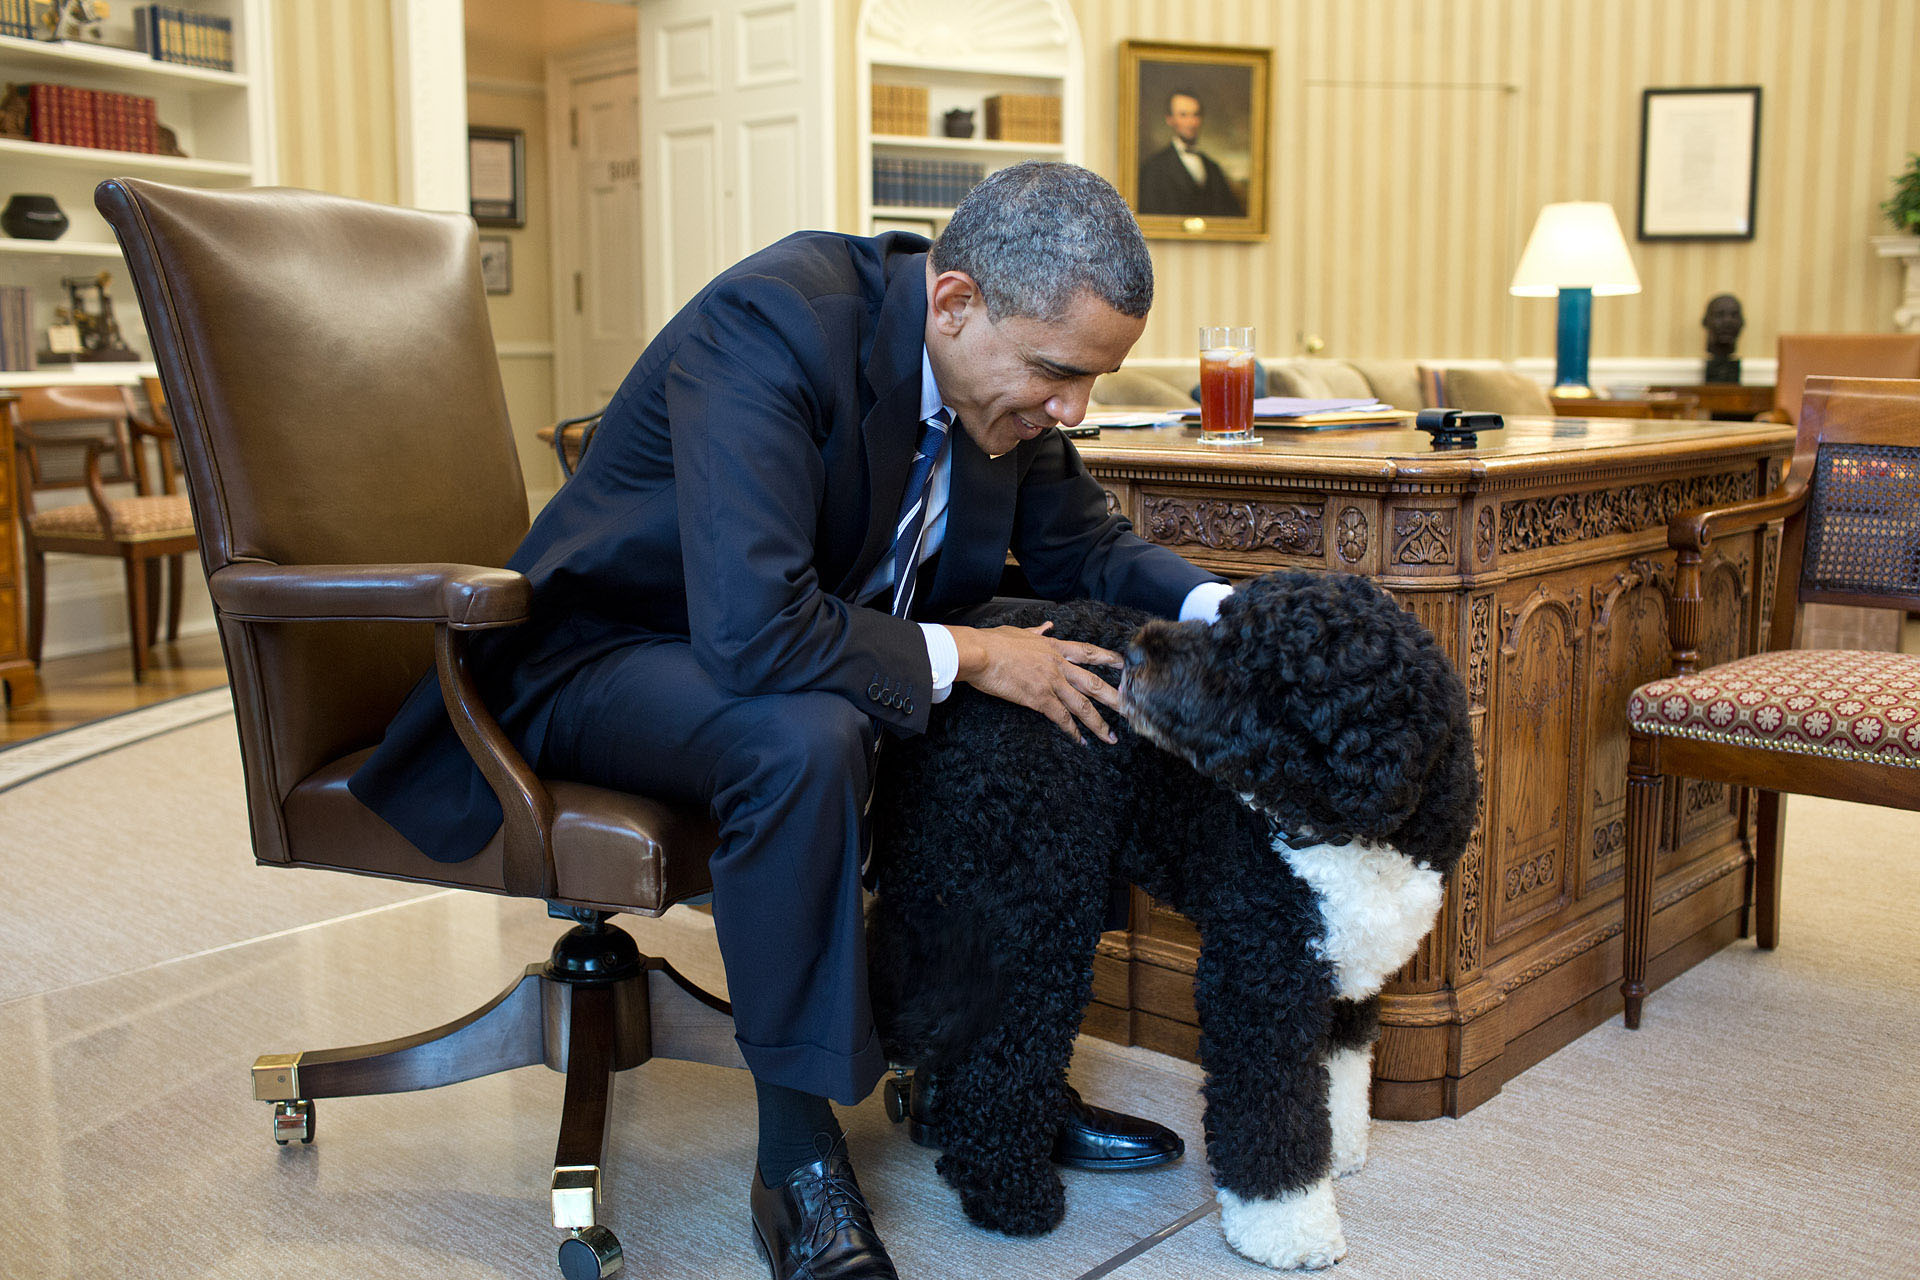 President Barack Obama pets Bo, the Obama family dog, in the Oval Office, June 21, 2012. (Official White House Photo by Pete Souza)